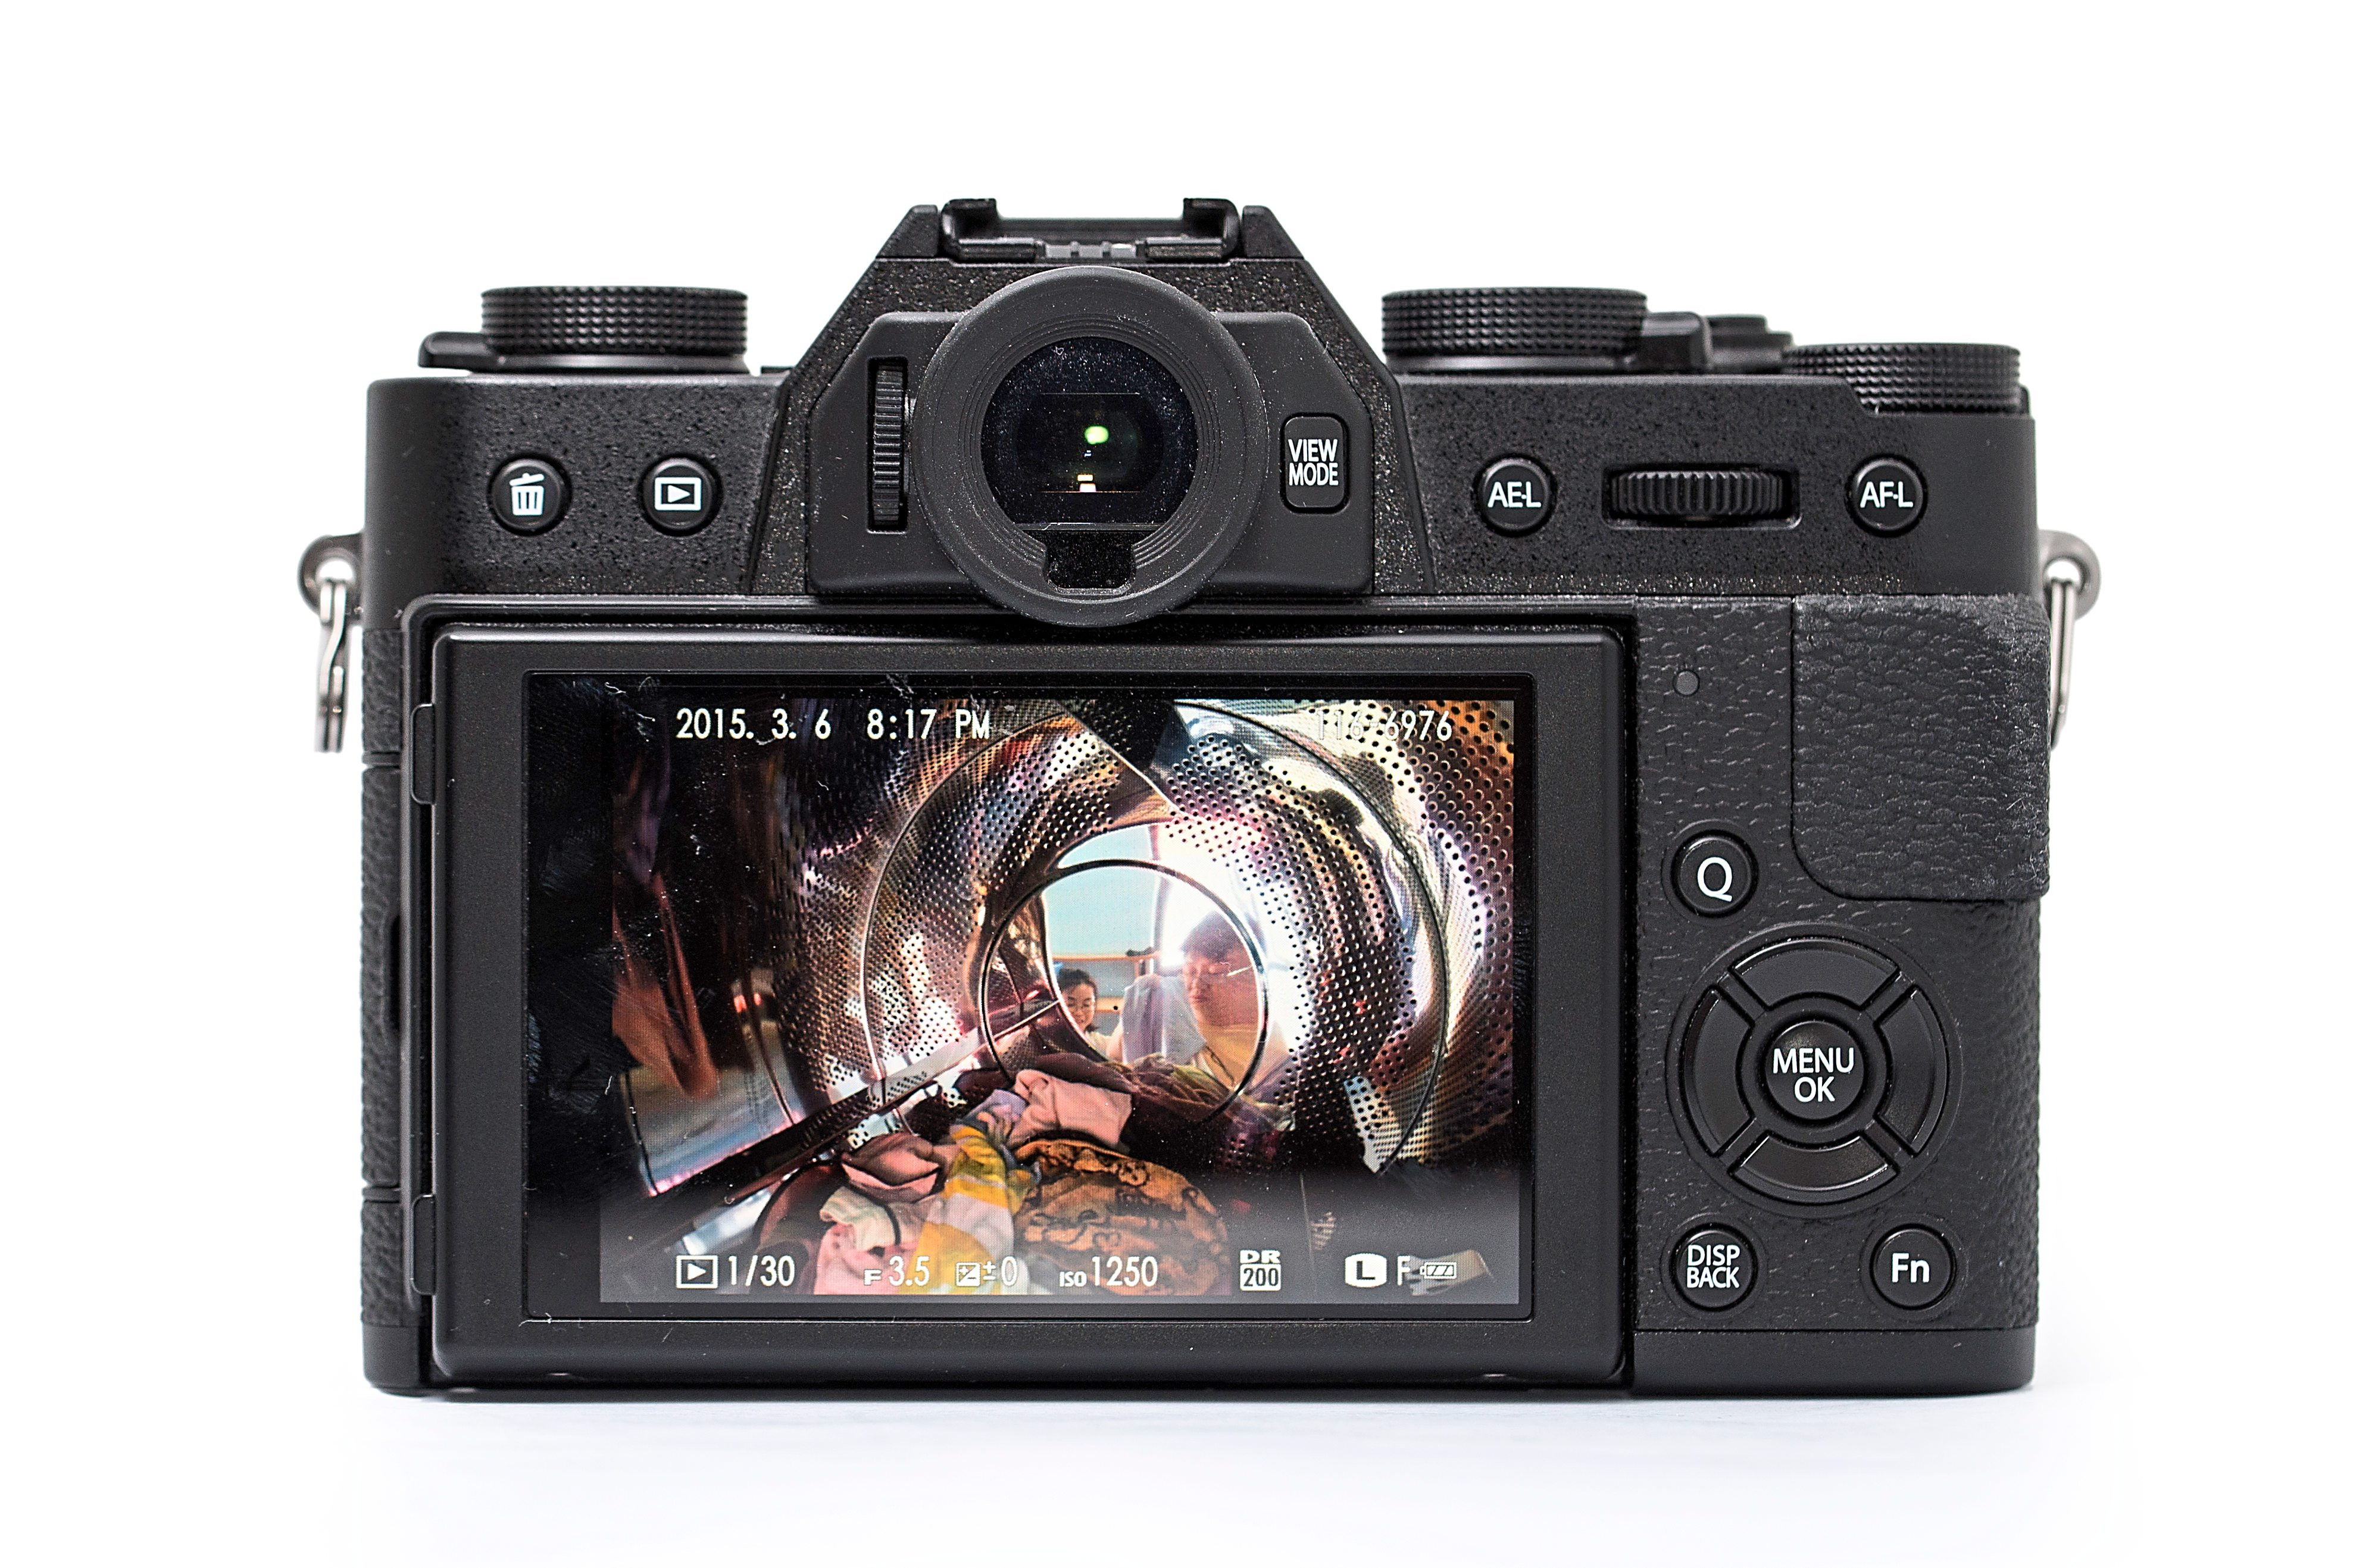 Customisable controls: most of the buttons on the Fuji X-T10 can be mapped to other functions